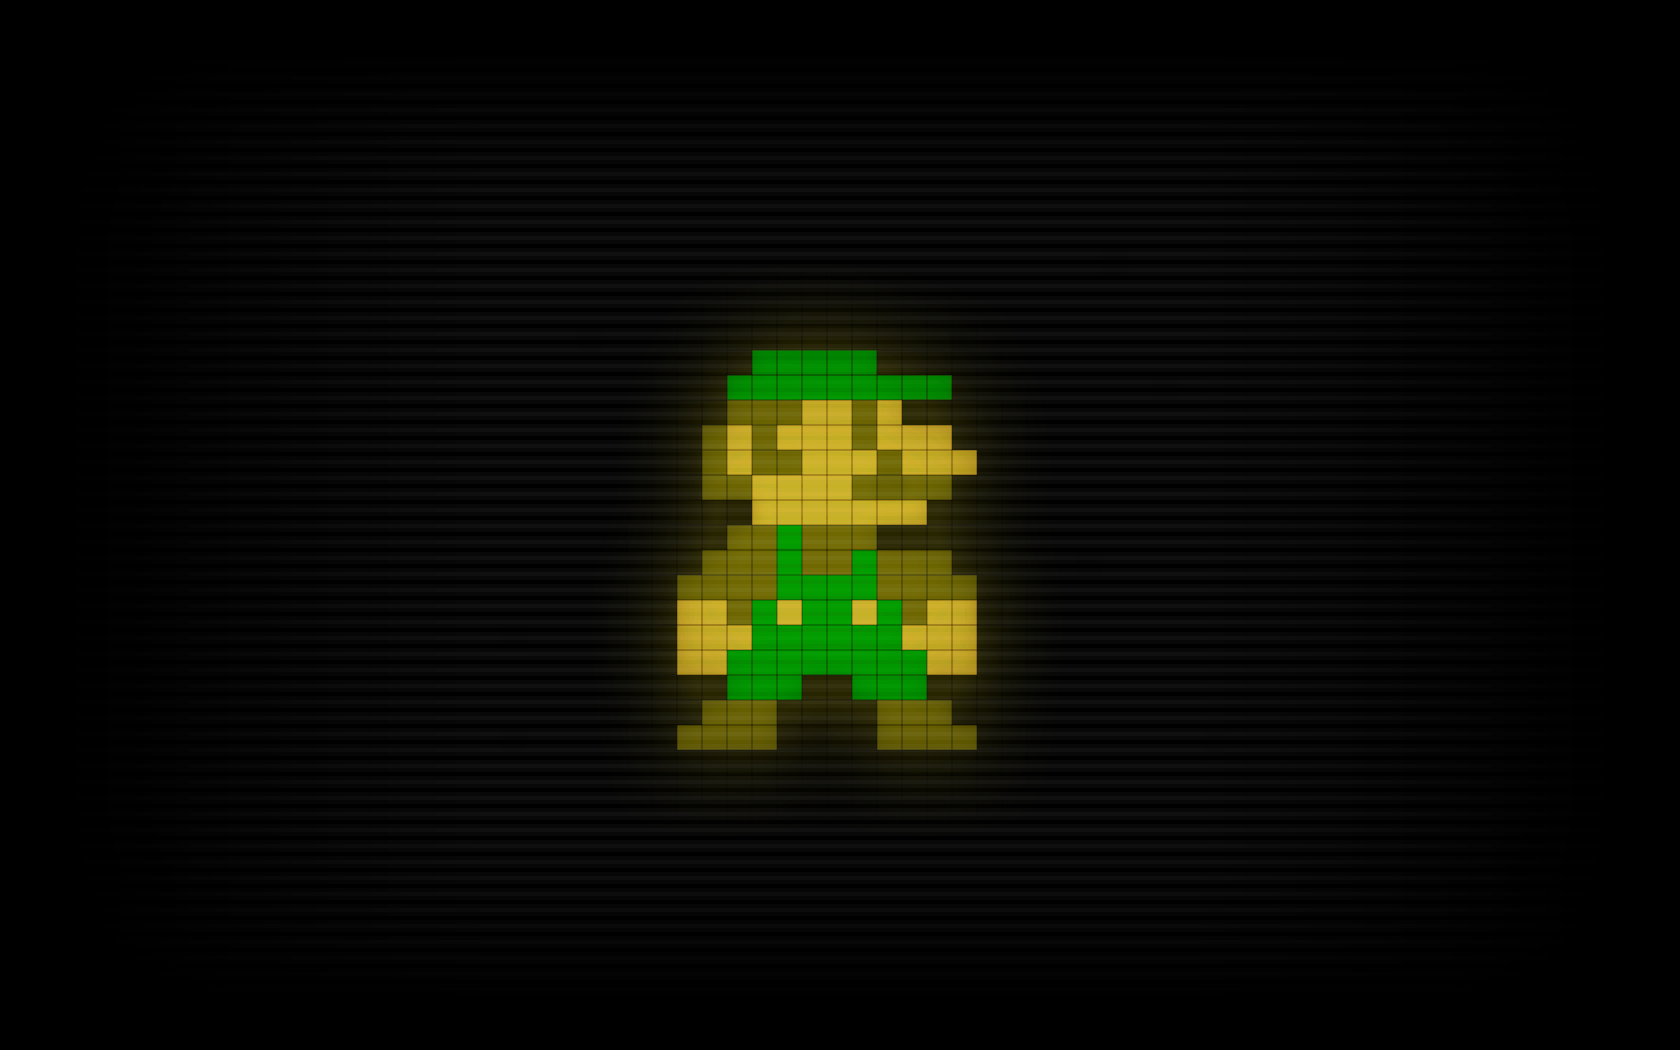 Go Back Images For Retro Gaming Wallpaper Iphone 1680x1050